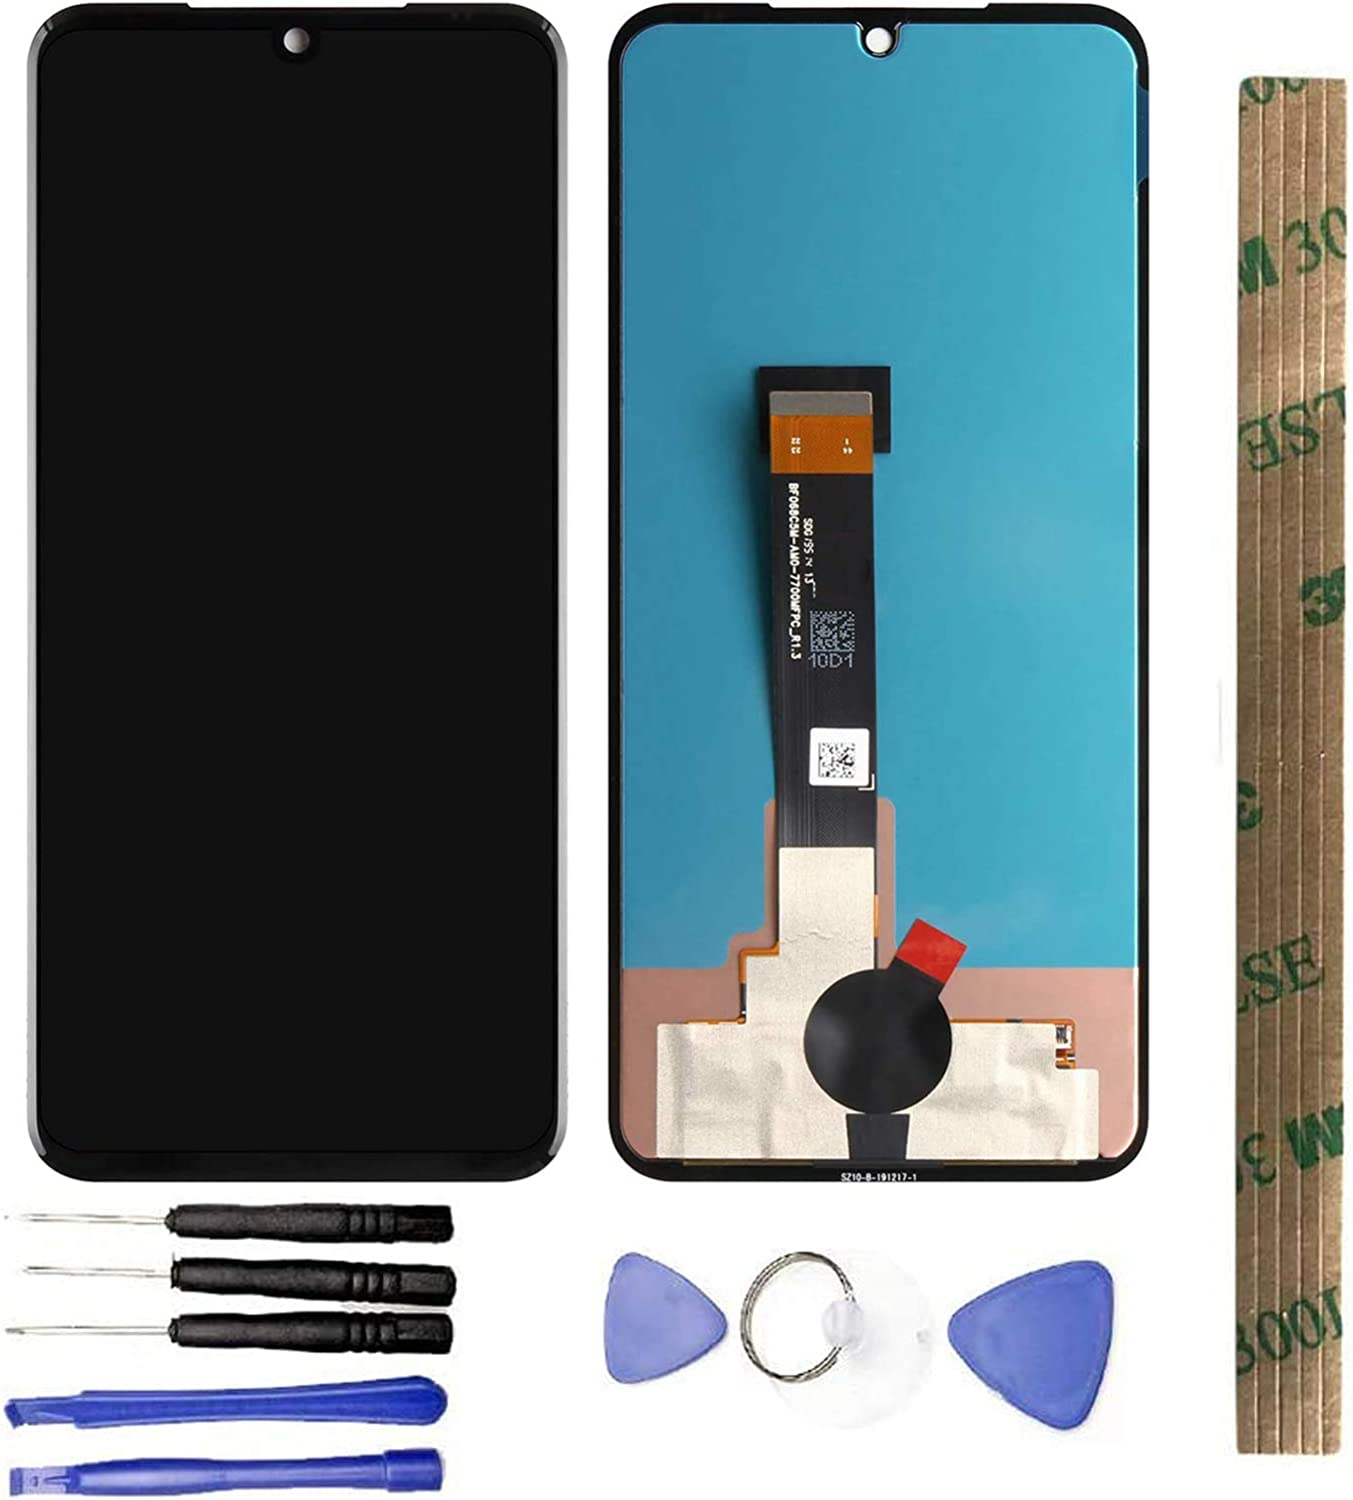 Max 83% OFF JayTong LCD We OFFer at cheap prices Display Replacement Screen Assembl Digitizer Touch